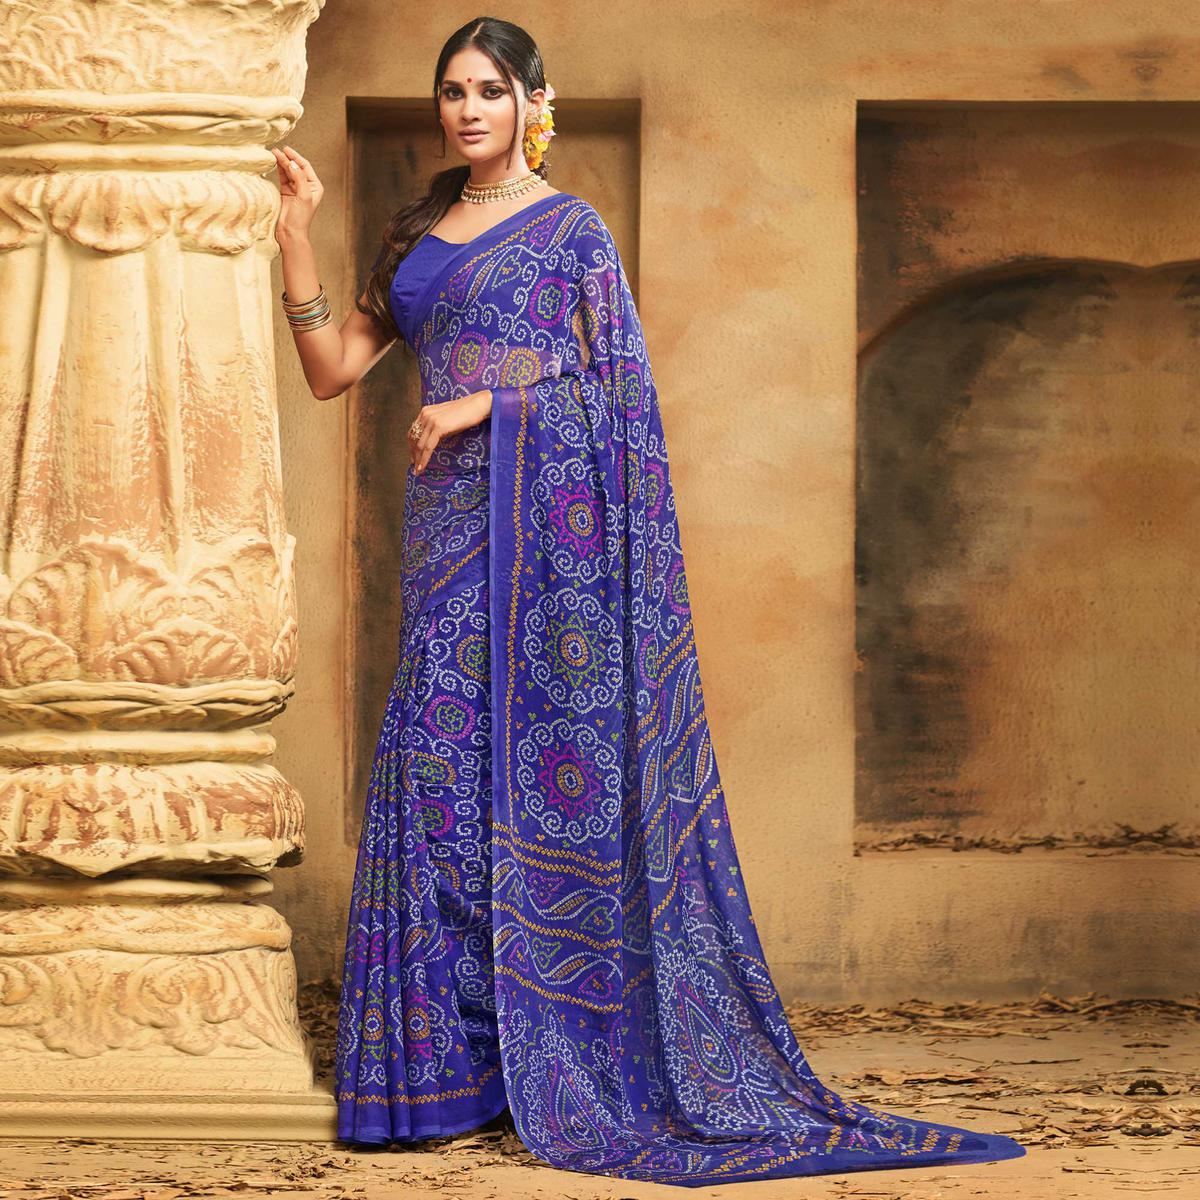 Sensational Blue Colored Casual Wear Printed Chiffon Saree